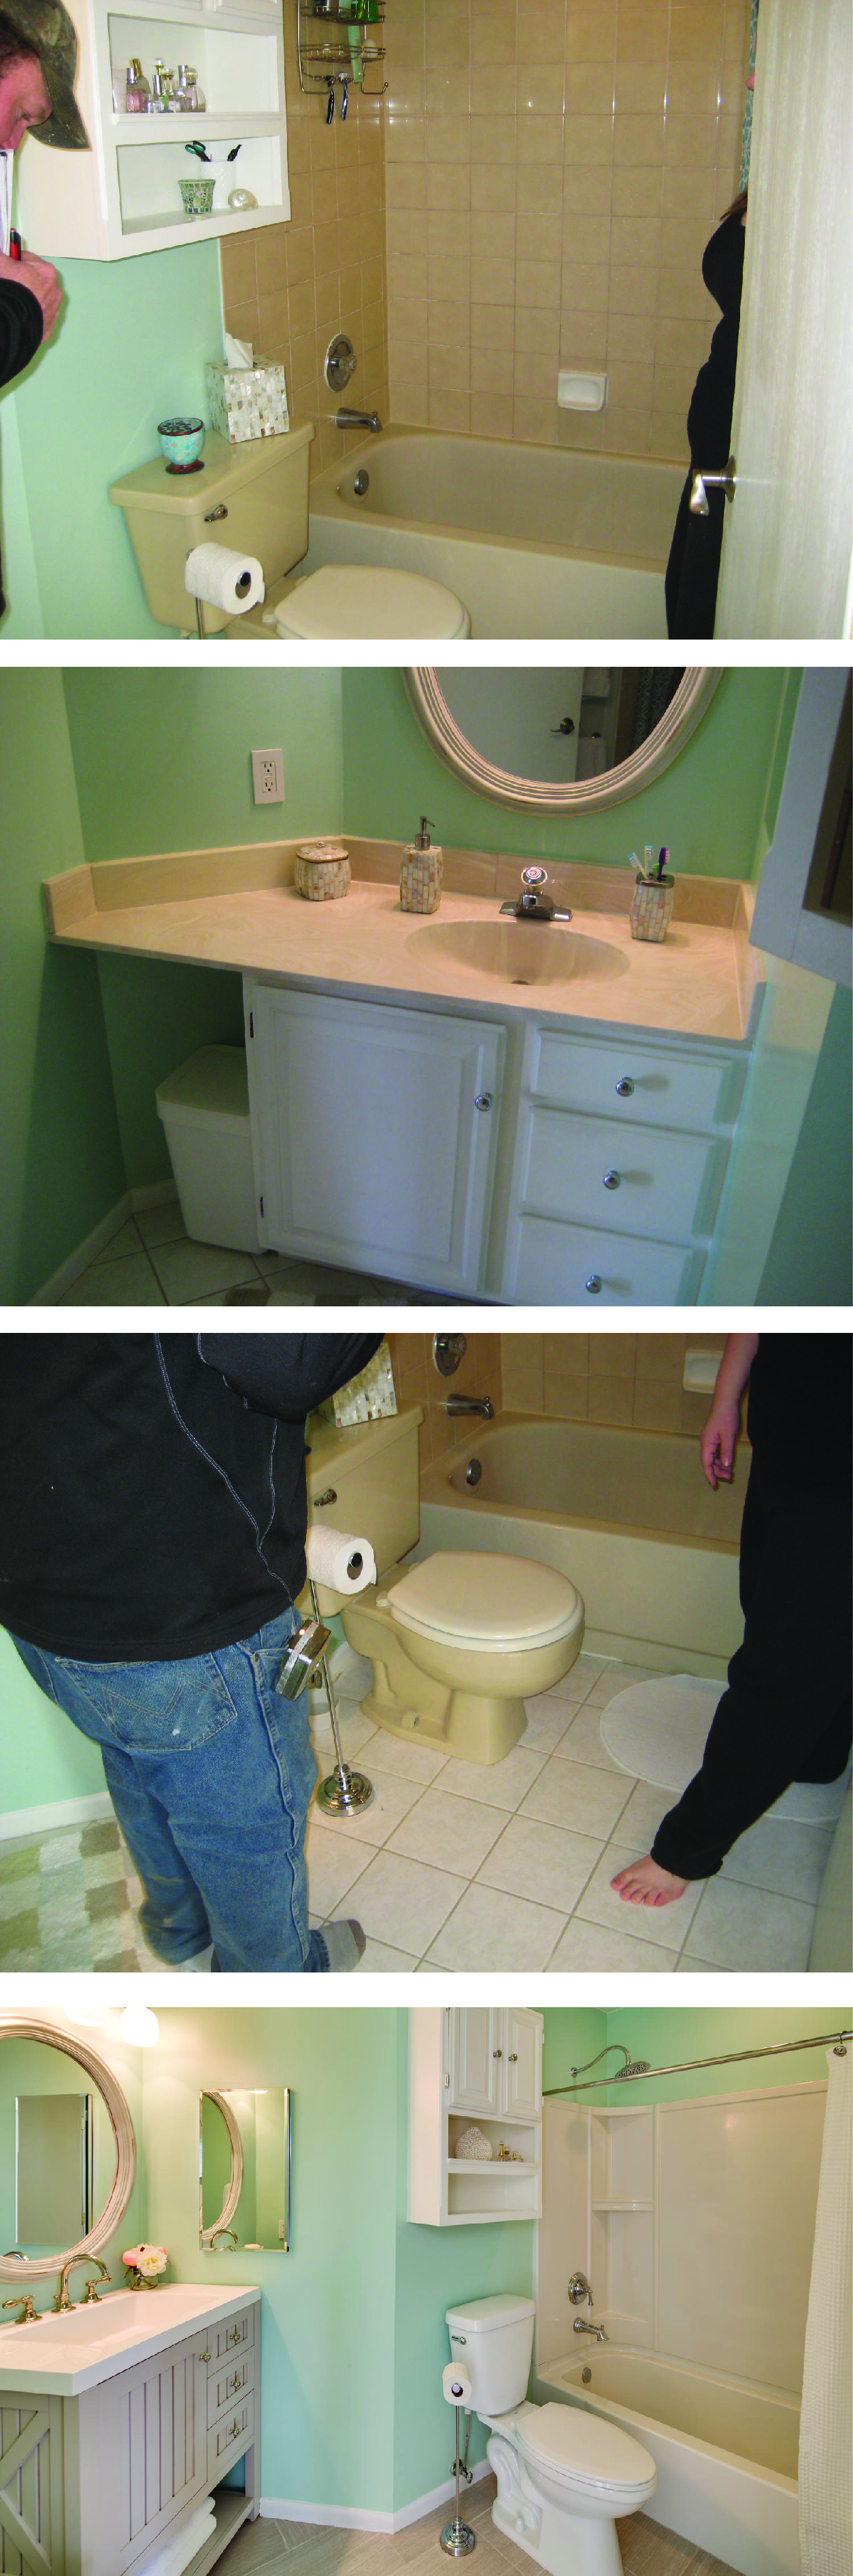 To Learn More About Twin Cities Minnesota Bathroom Remodeling Prepossessing Bathroom Remodeling Service Review